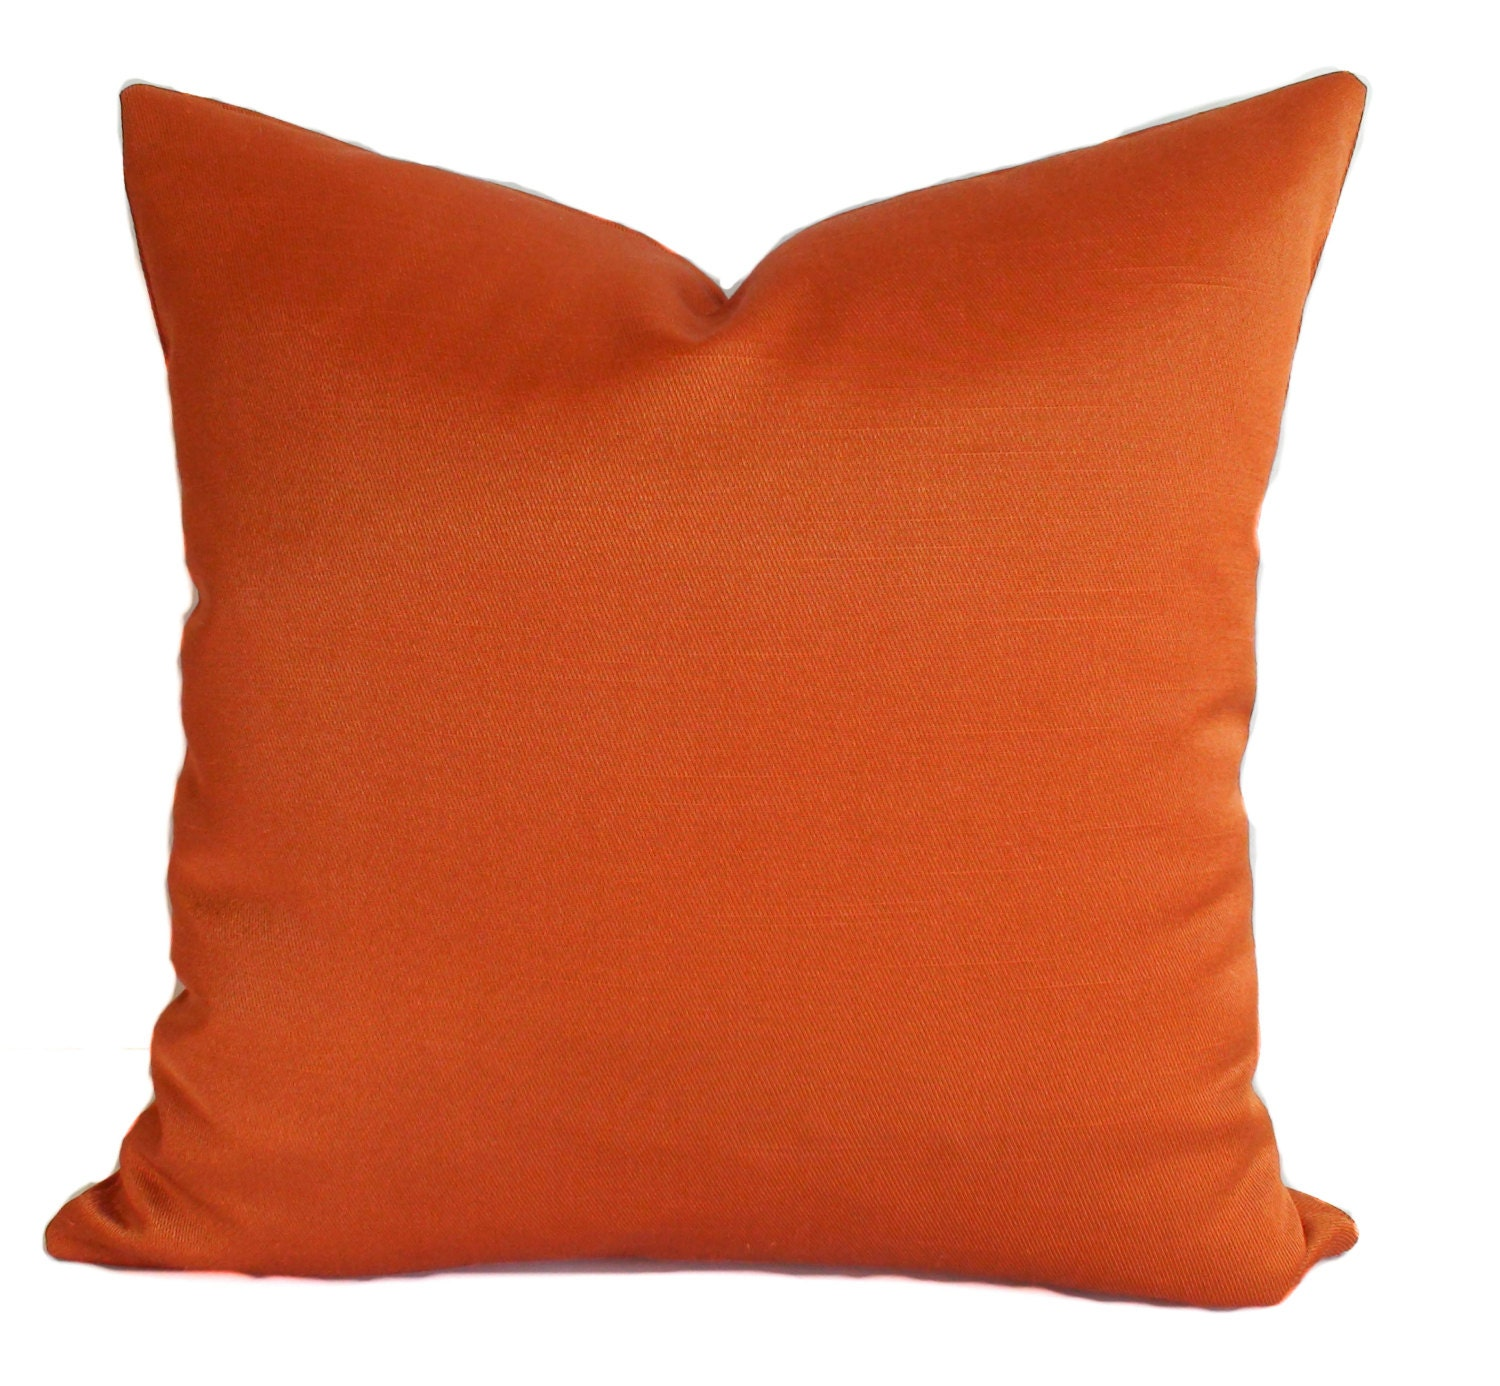 Decorative Orange Lumbar Pillow : Orange pillow cover 12x16 Lumbar pillow Throw pillow